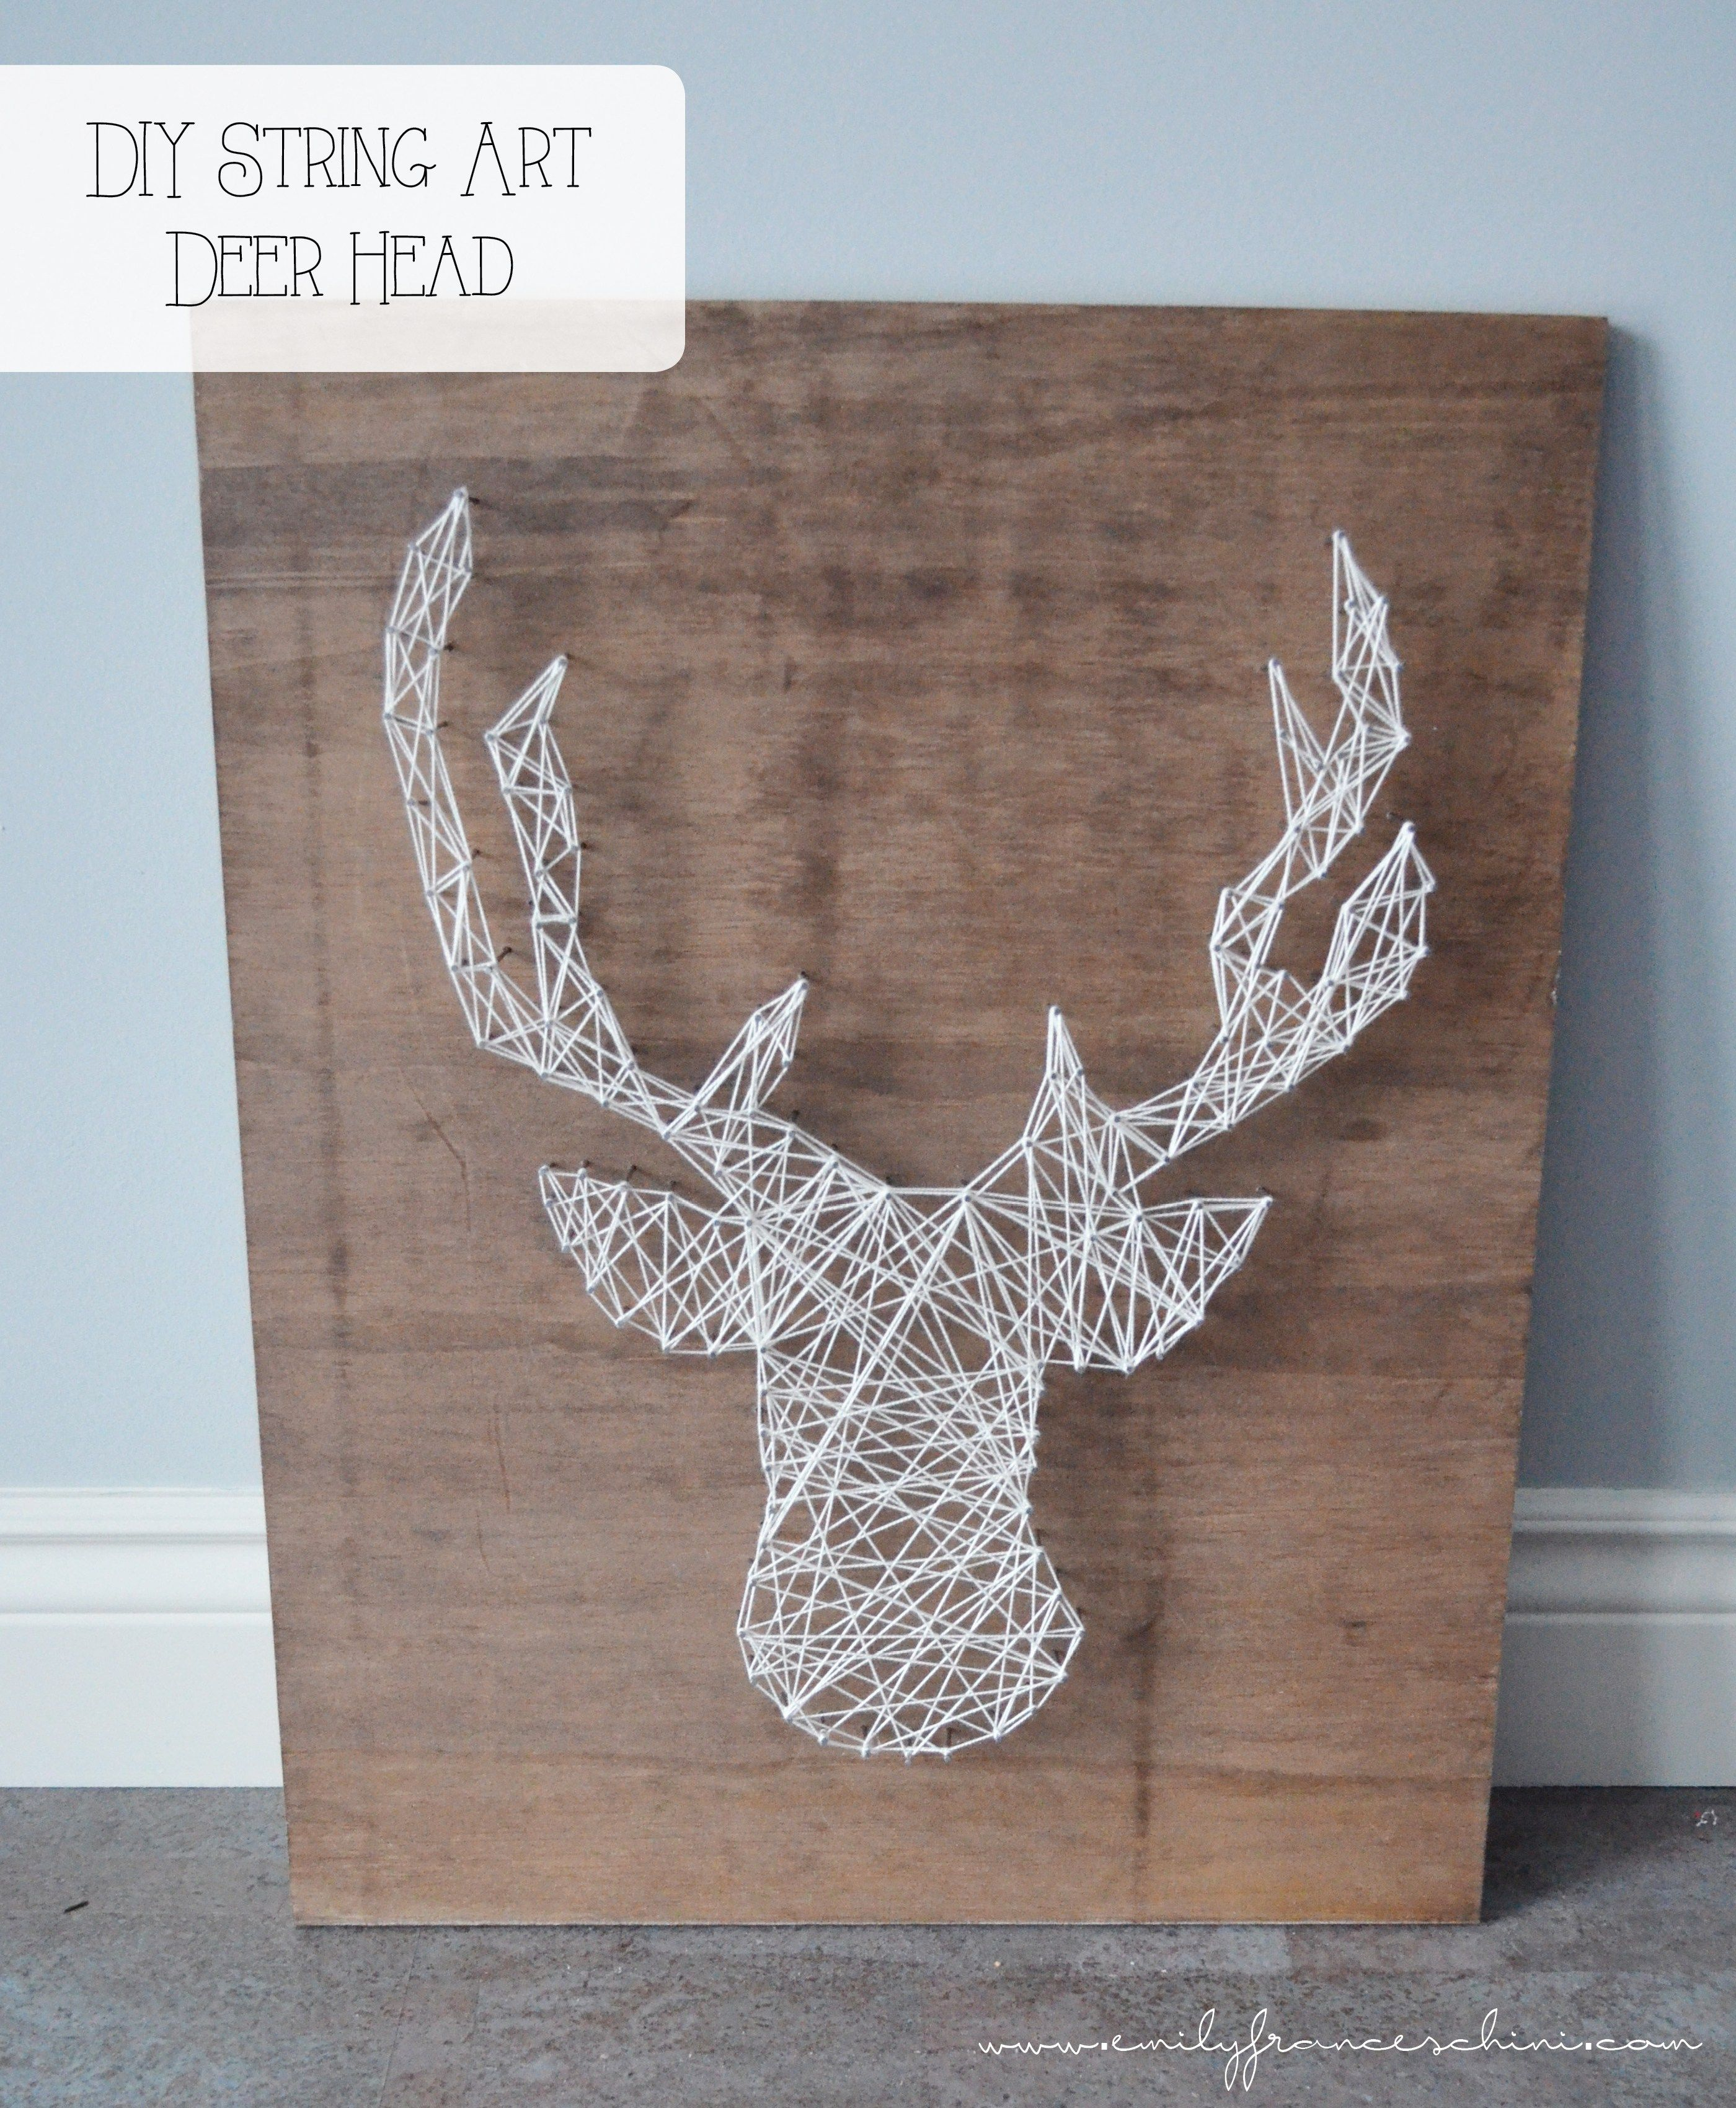 diy string art deer head fils tendus t te de cerf tutoriel faire soi m me fils tendus. Black Bedroom Furniture Sets. Home Design Ideas